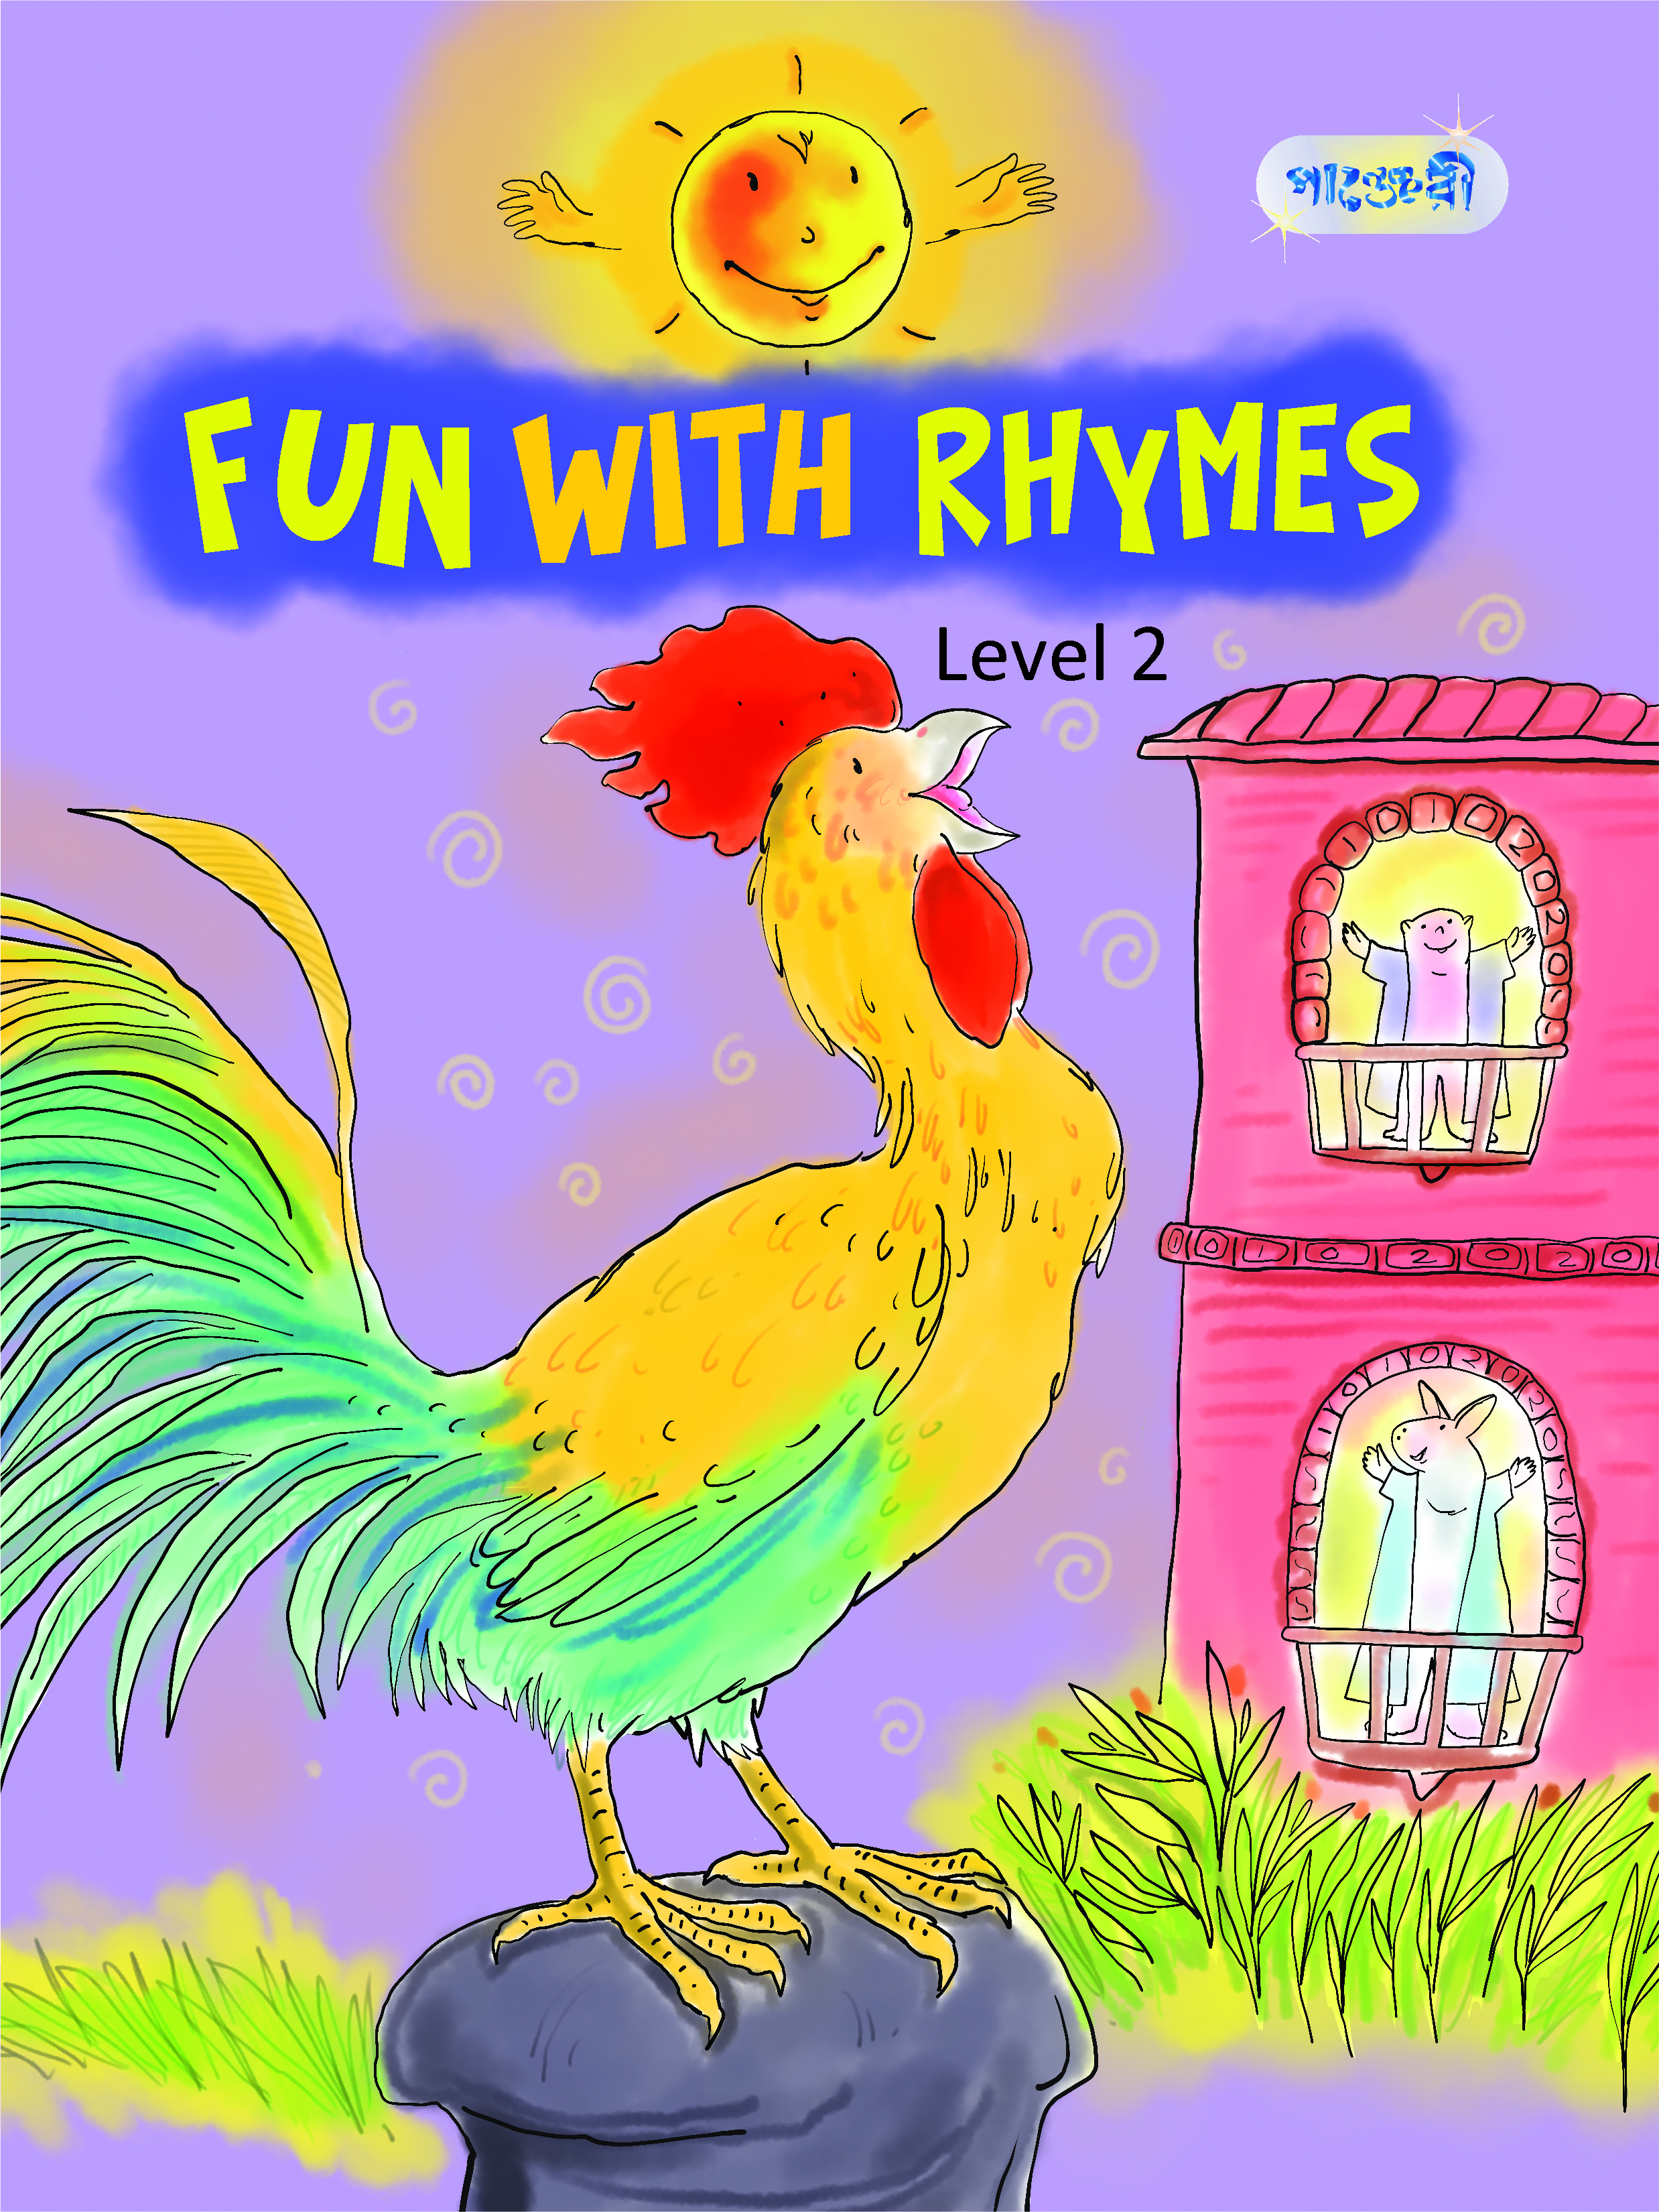 Fun With Rhymes Level 2